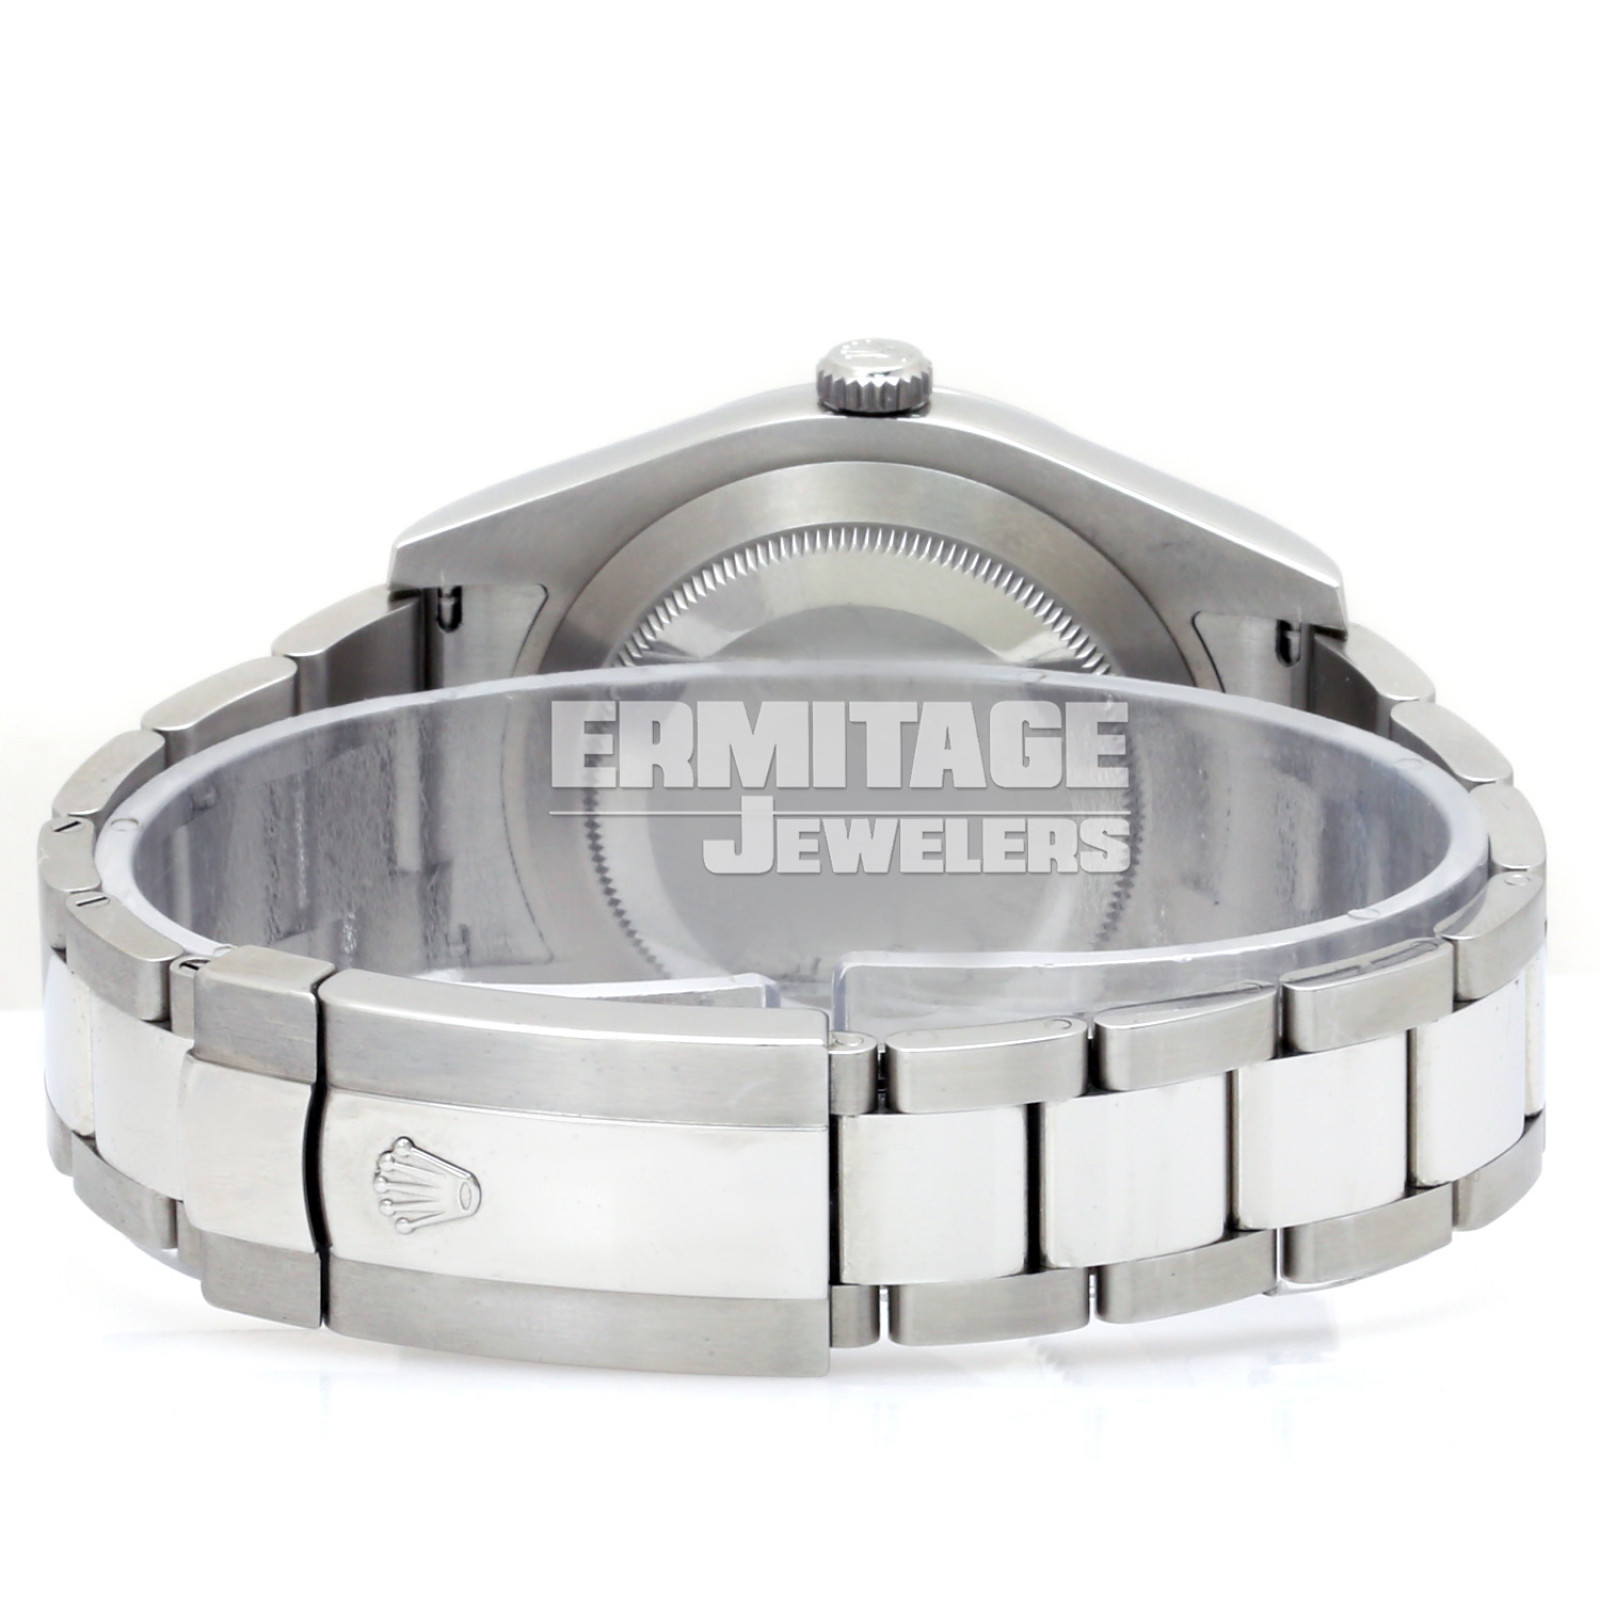 Steel on Oyster Rolex Datejust 116300 41 mm